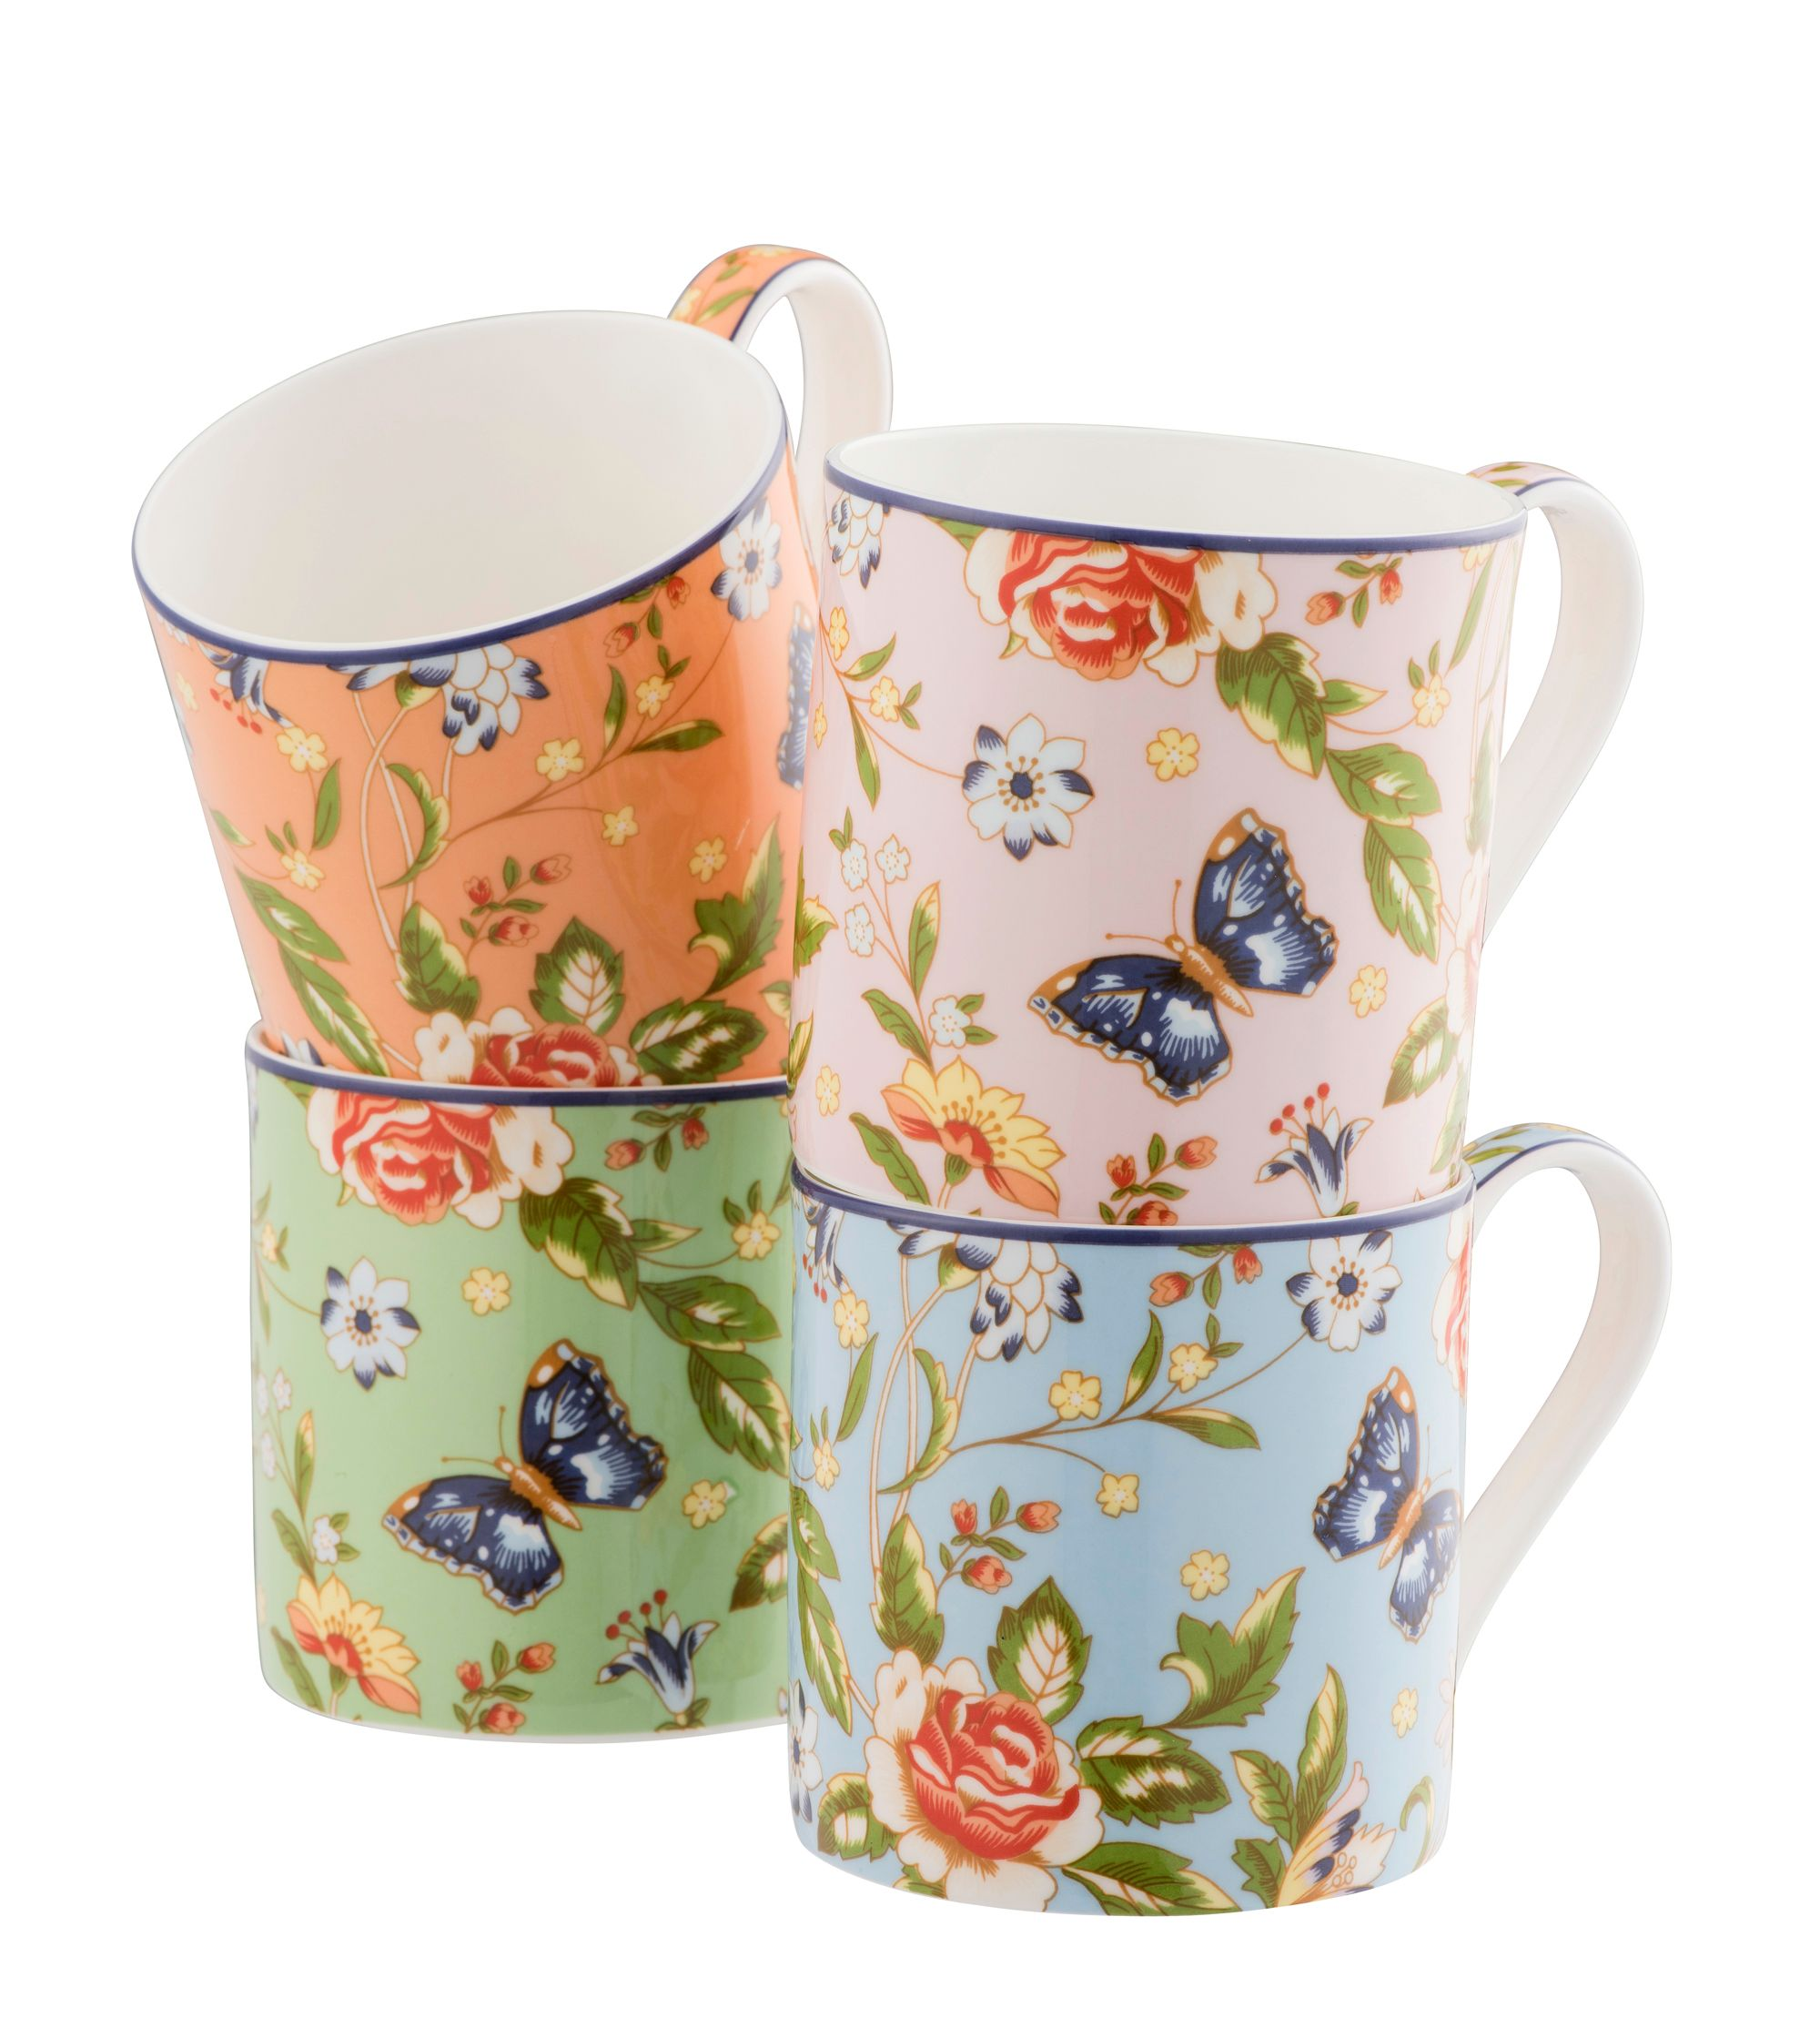 Aynsley Aynsley Cottage garden windsor mugs set of 4